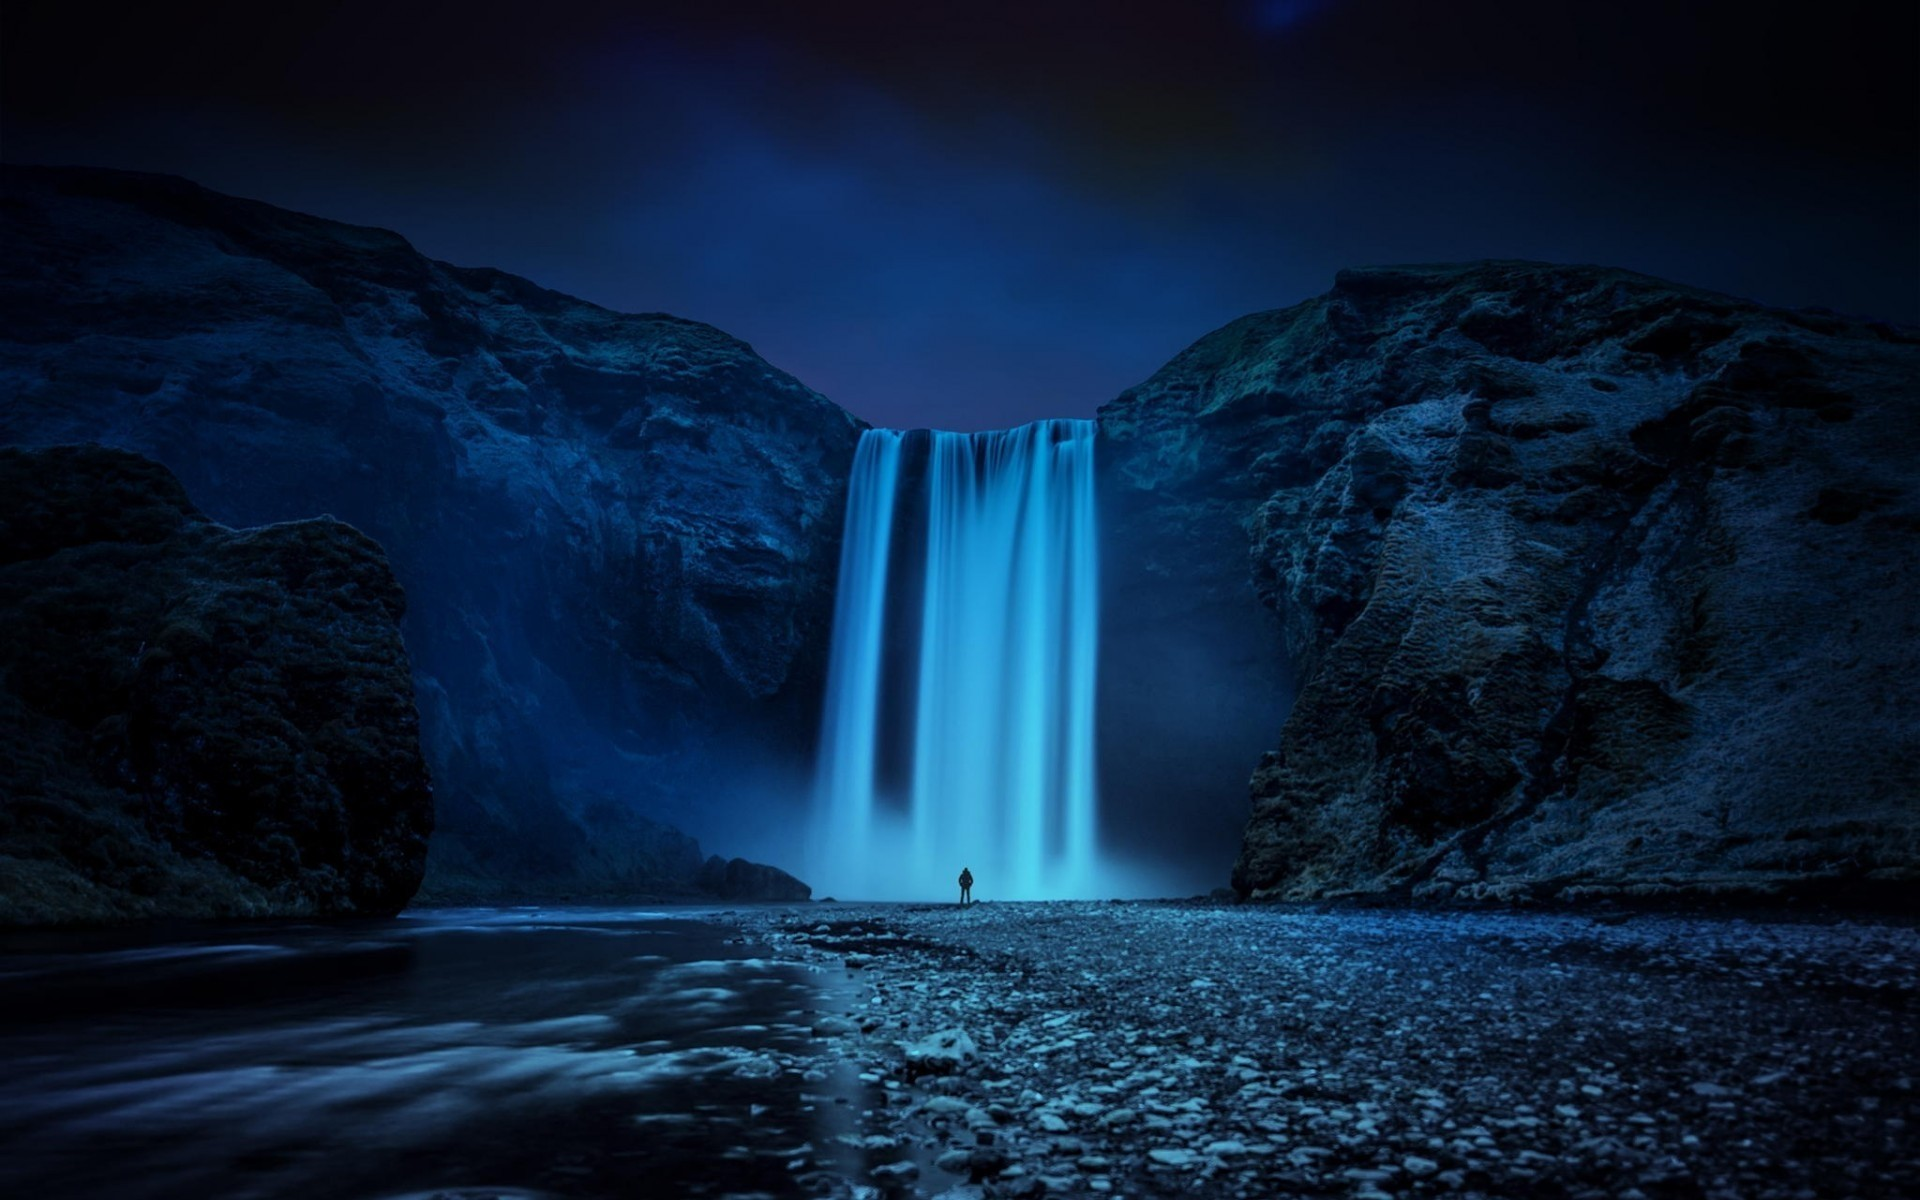 other city water river waterfall travel evening nature sky sunset landscape photograph outdoors motion moon light dawn dusk reflection iceland cliff skogafoss waterfall